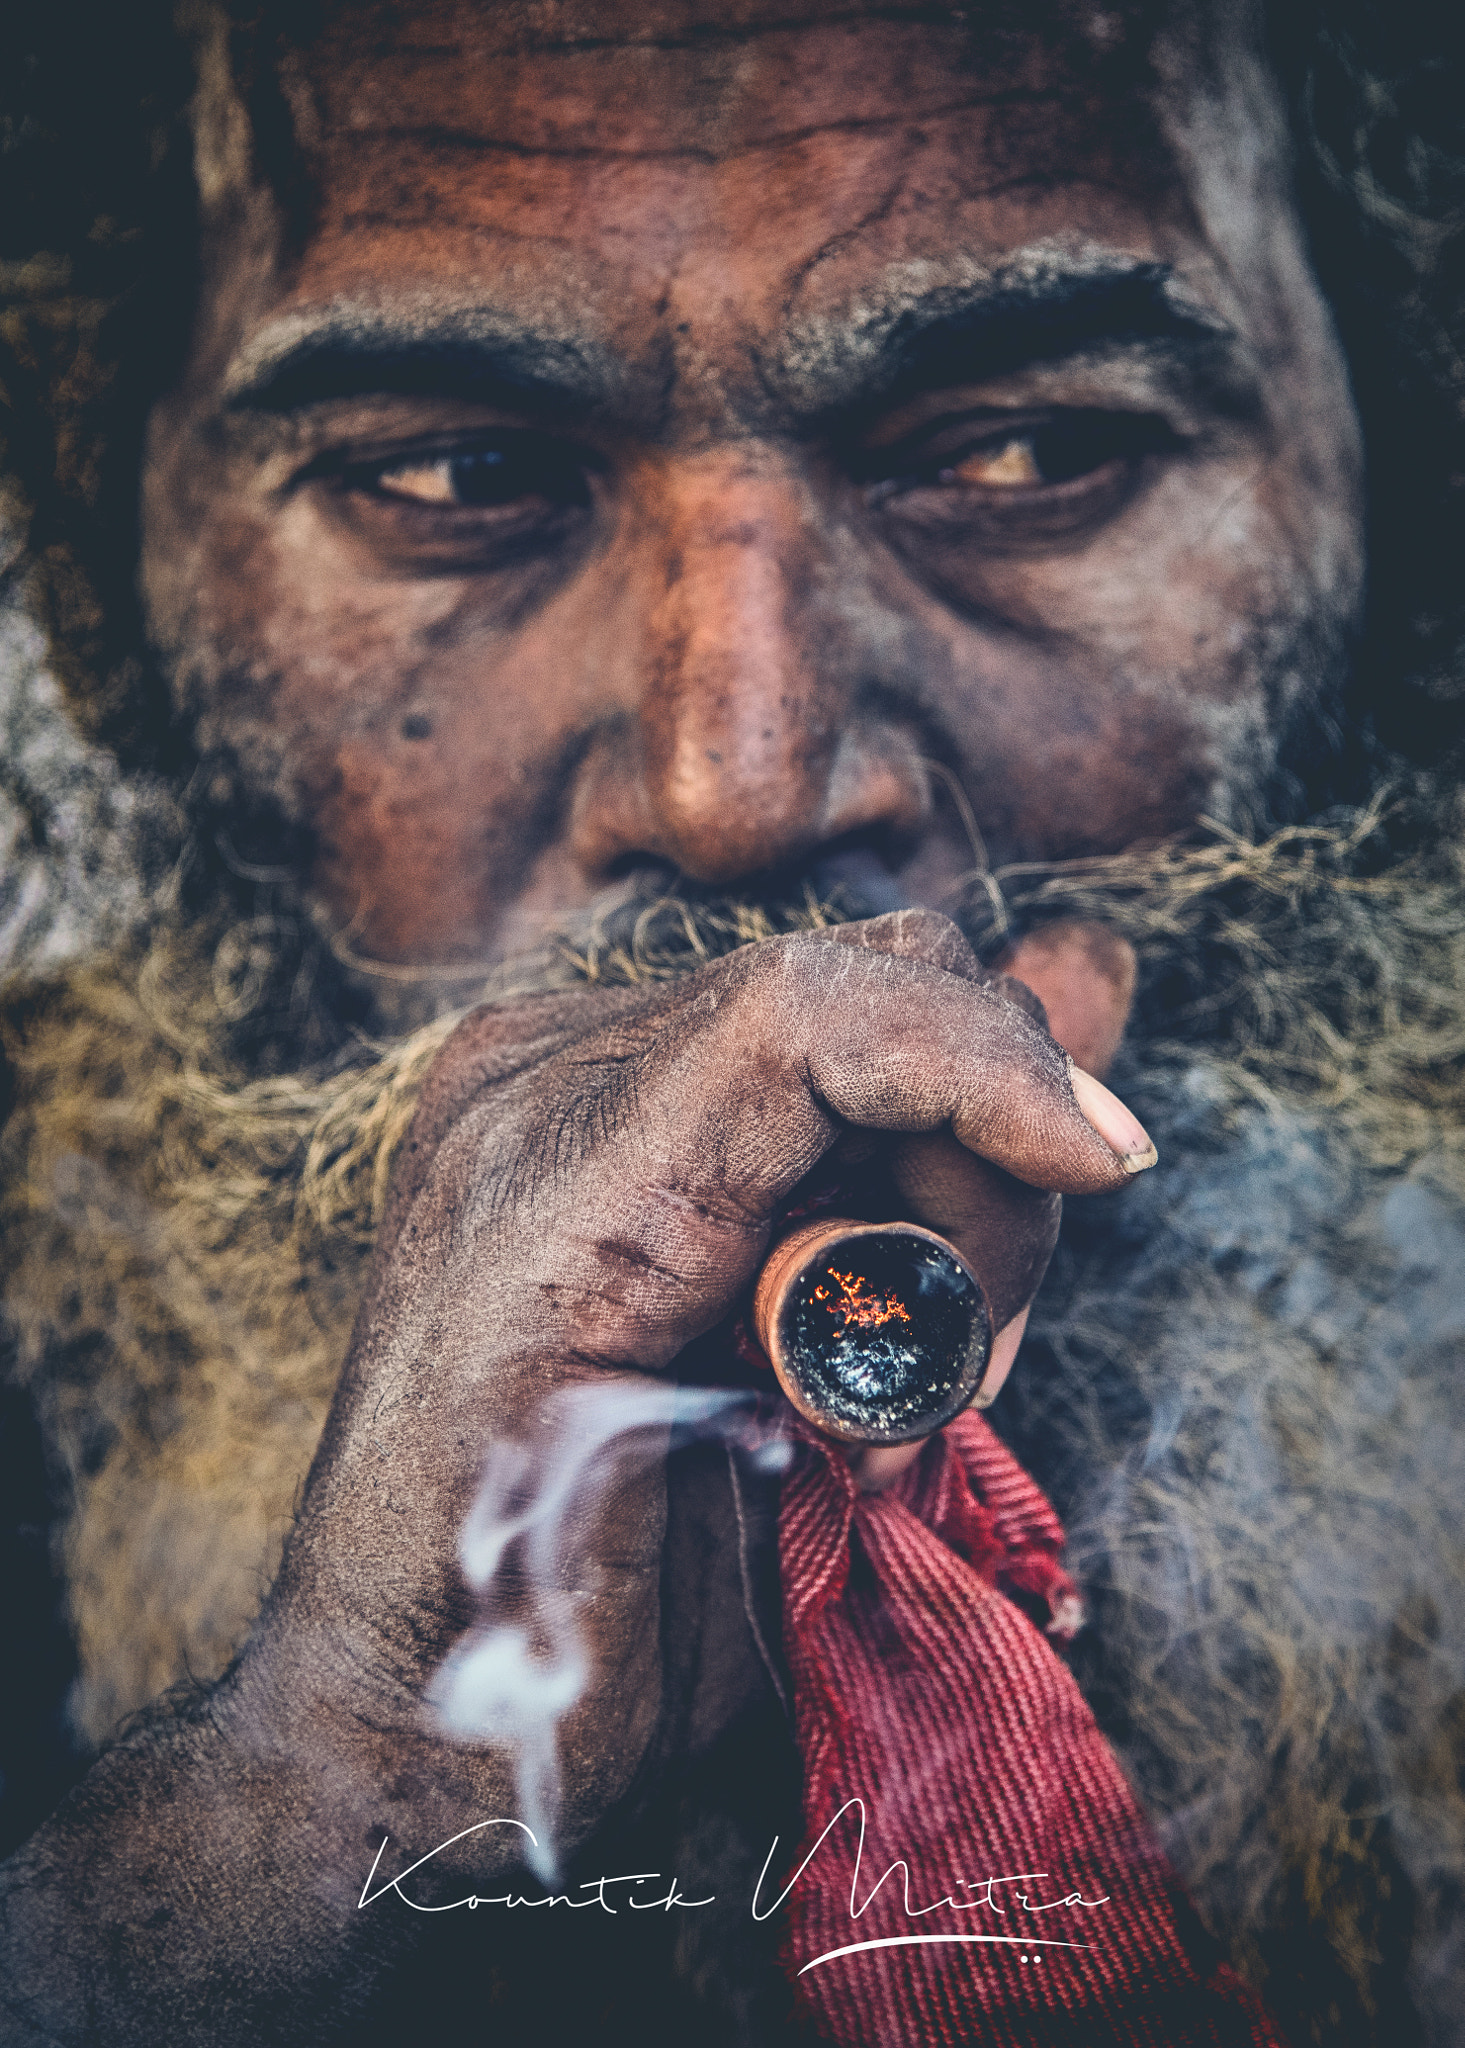 Old man smoking weed